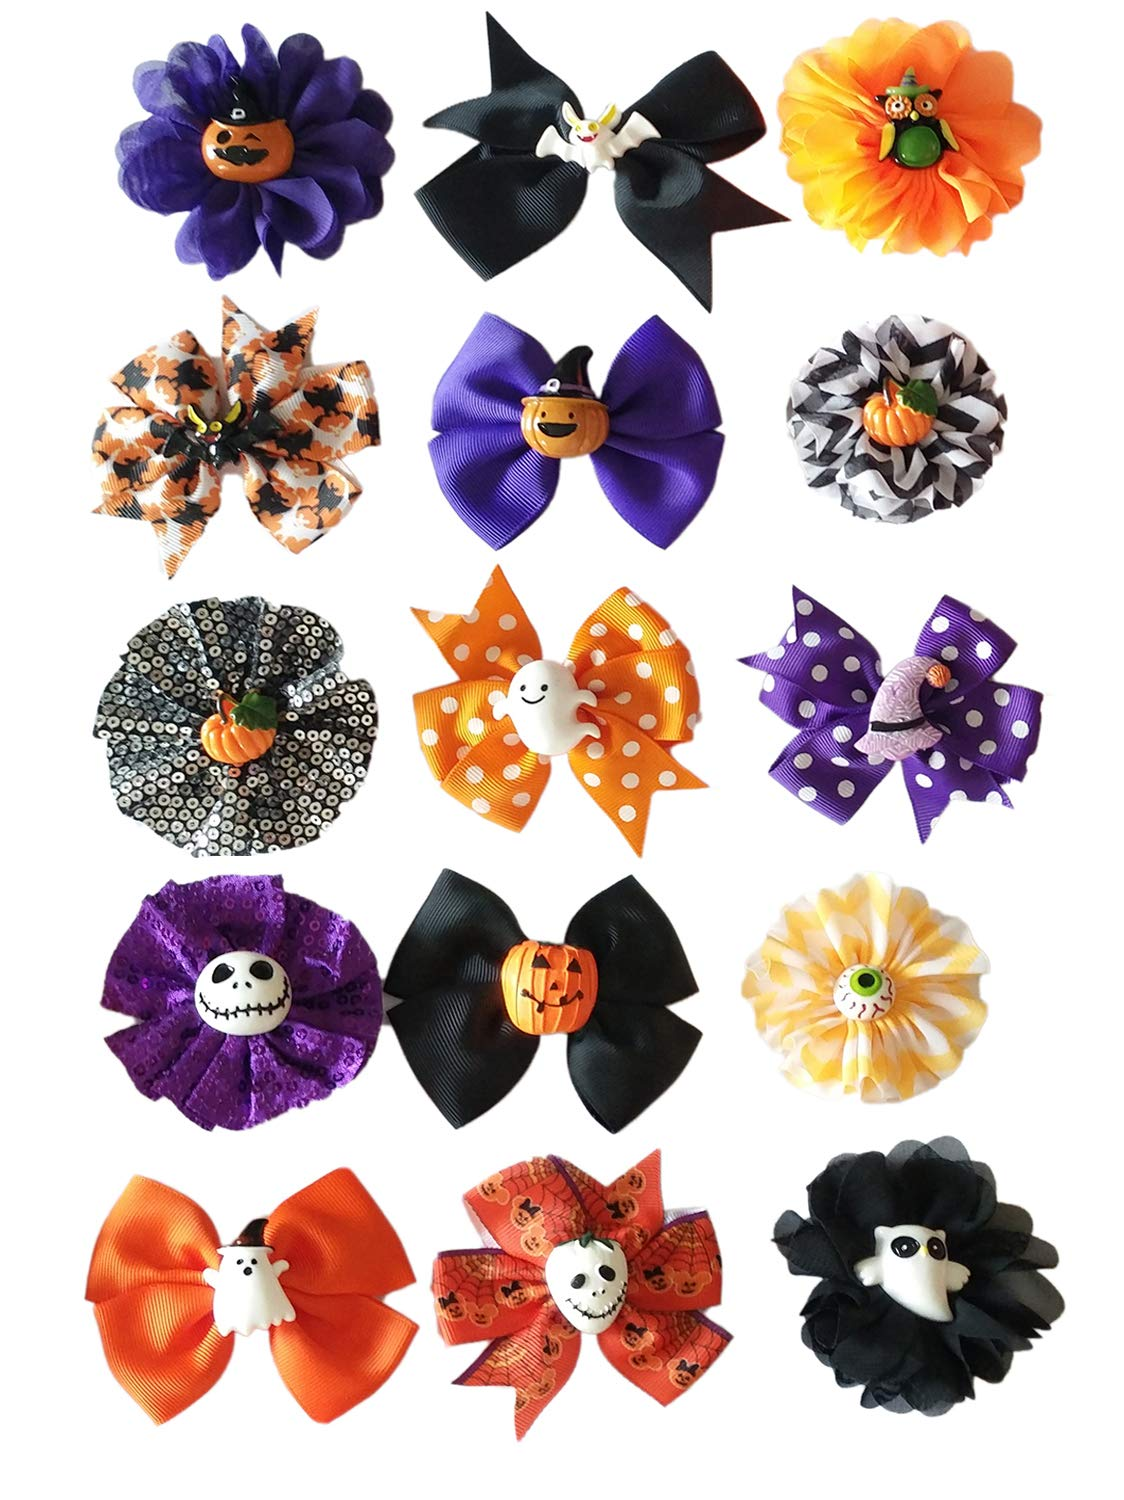 PET SHOW Pack of 100 Halloween Dog Collar Charms Flower Bows Bowties Accessories for Cat Puppy Collars Attachment Small Dogs Grooming by PET SHOW